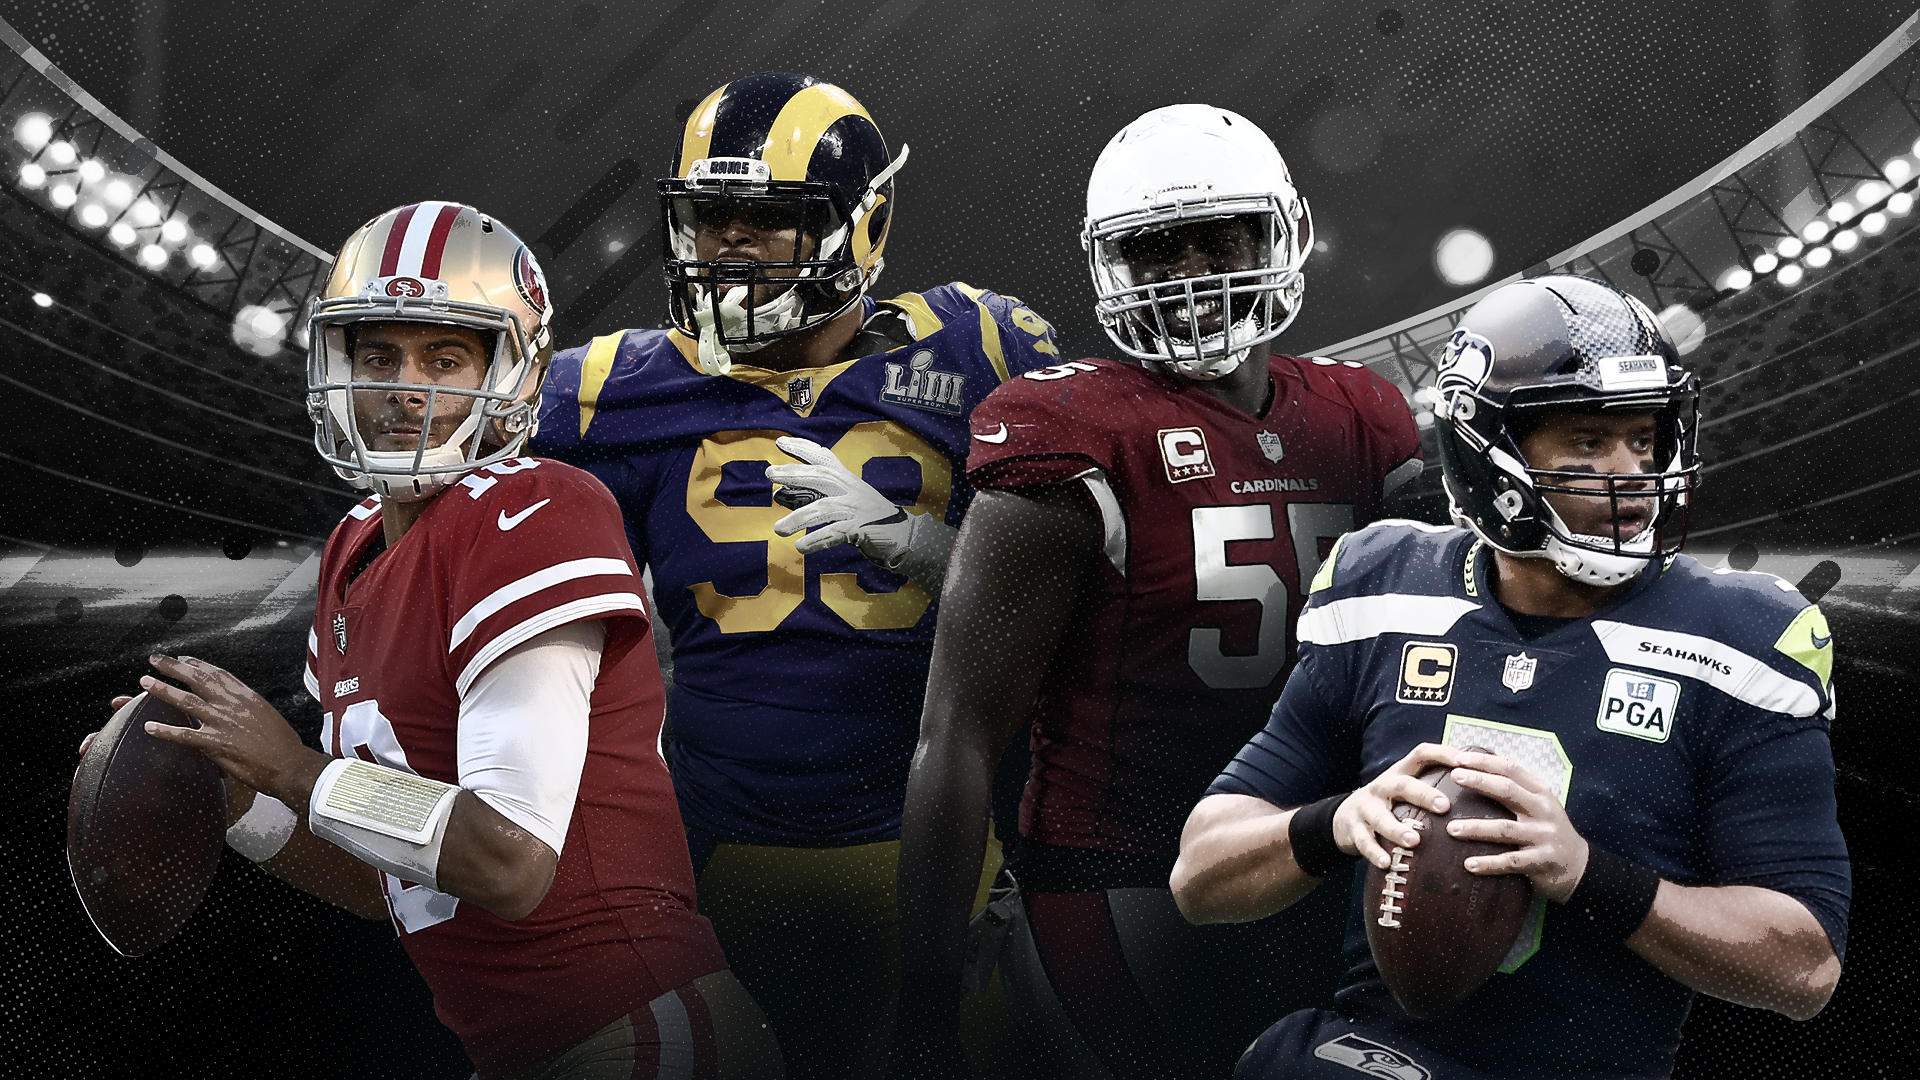 NFL Predictions Win-Loss Ratio Odds NFC West League Rams Seahawks 49ers Cardinals